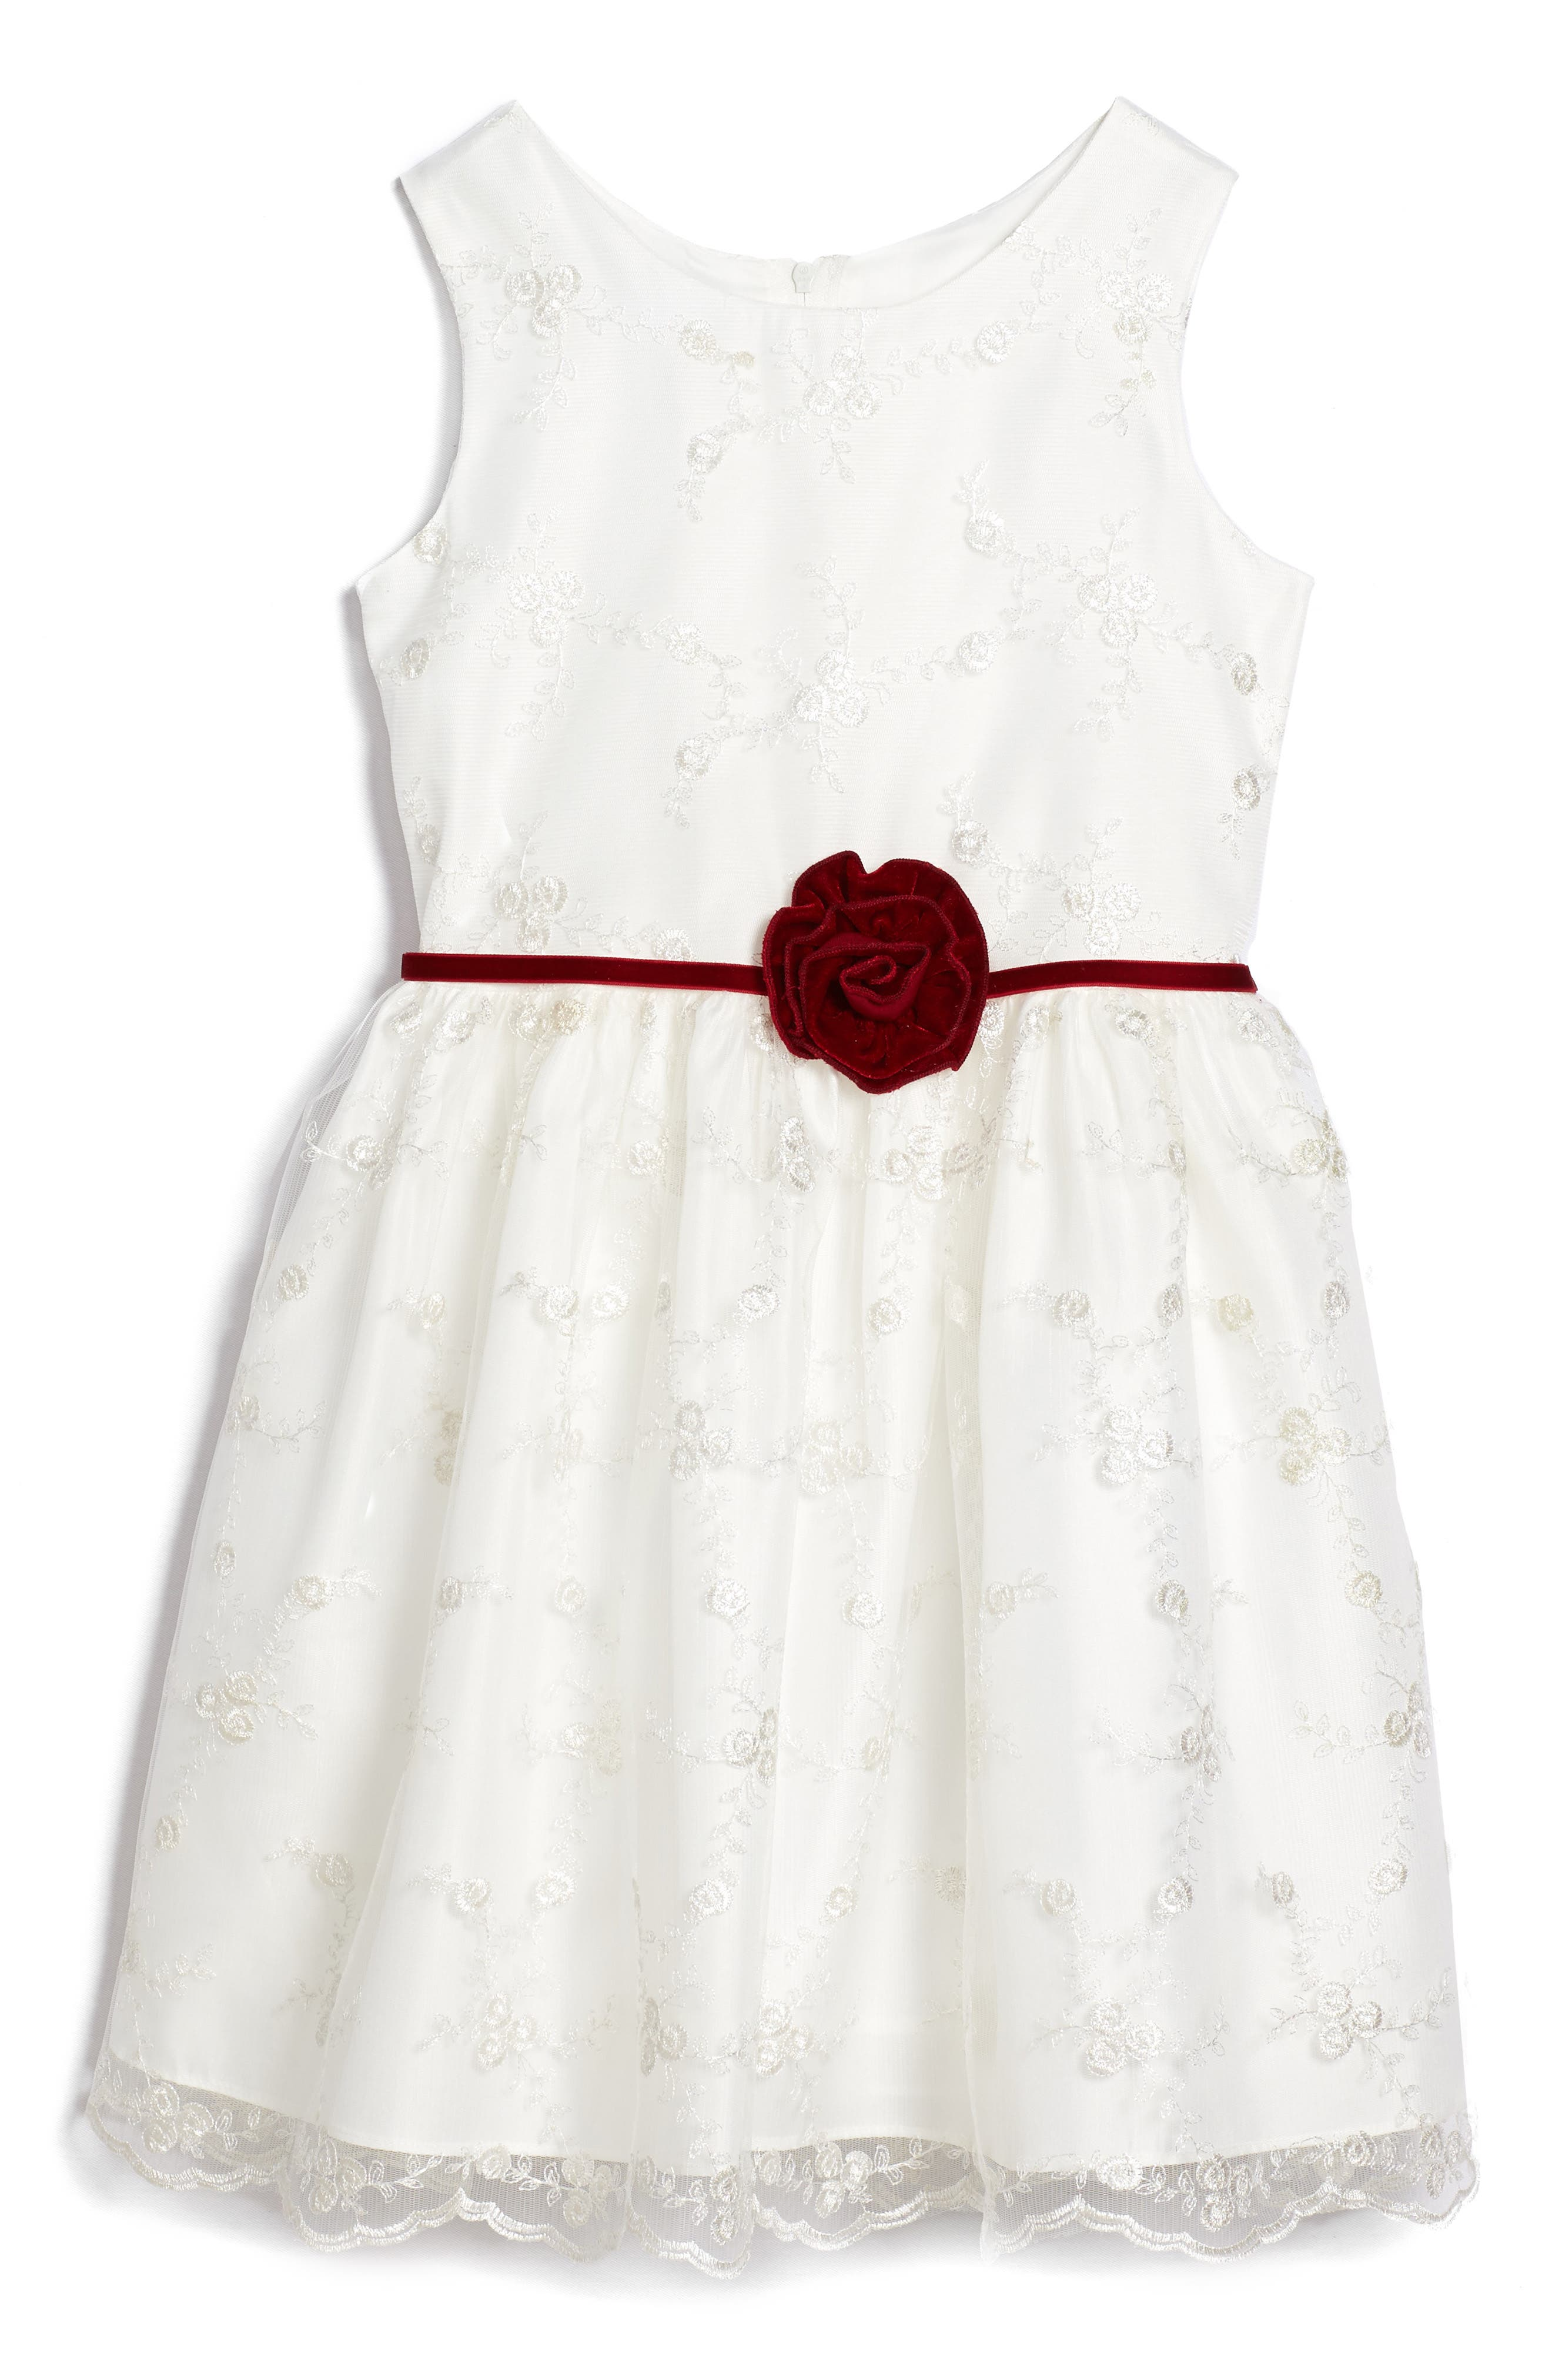 Embroidered Floral Dress,                             Main thumbnail 1, color,                             White/ Gold